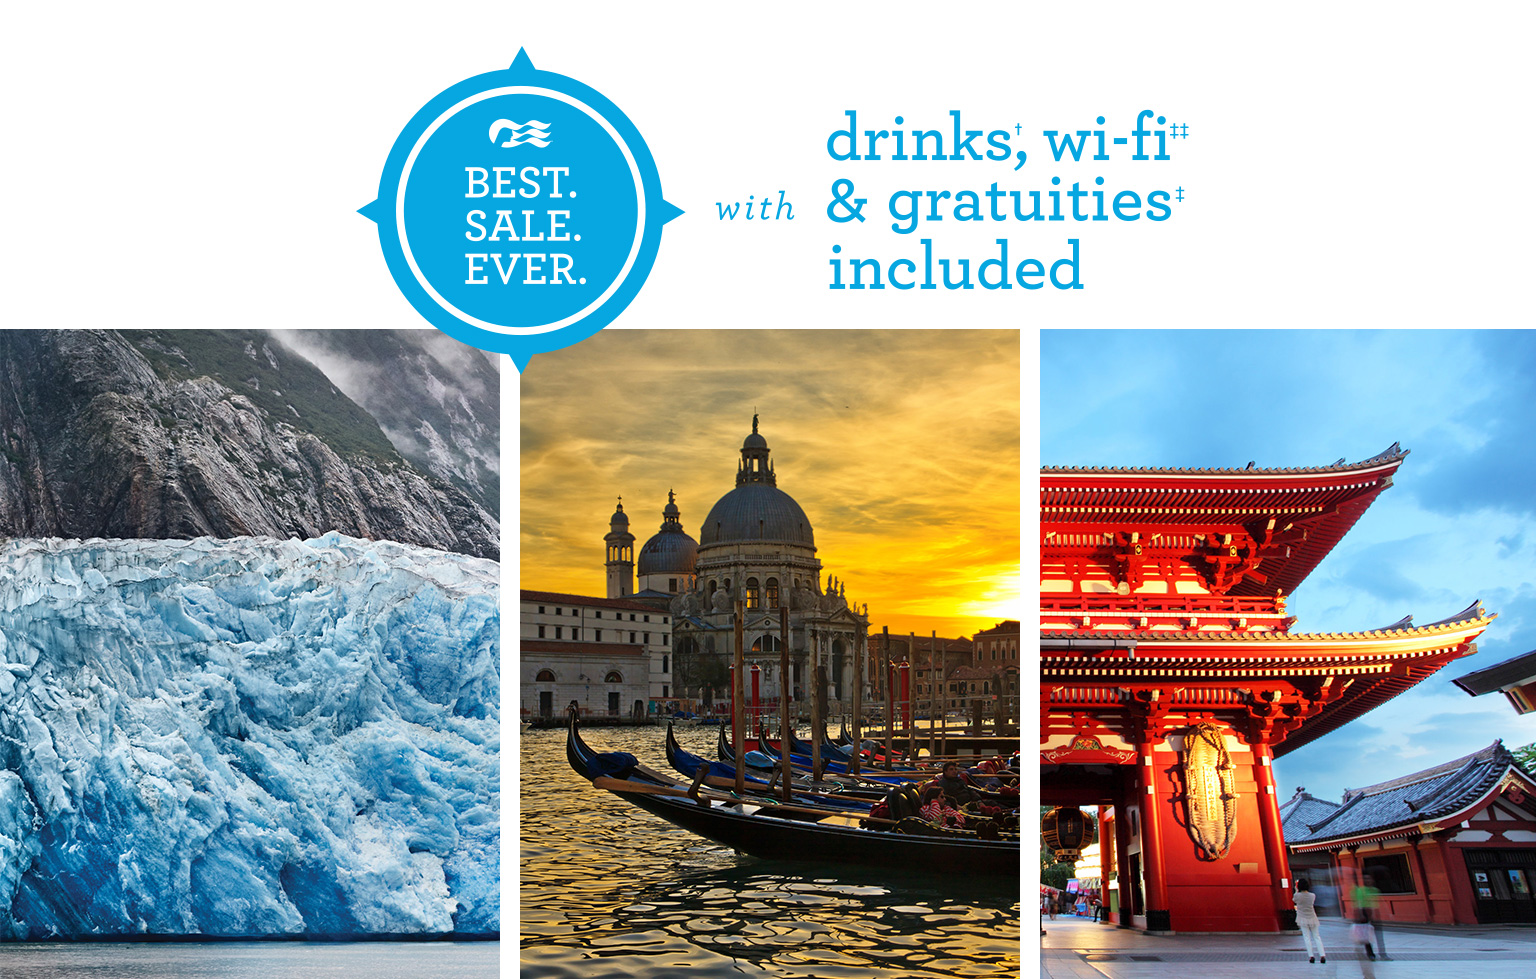 New Alaska & Europe vacations on sale now!